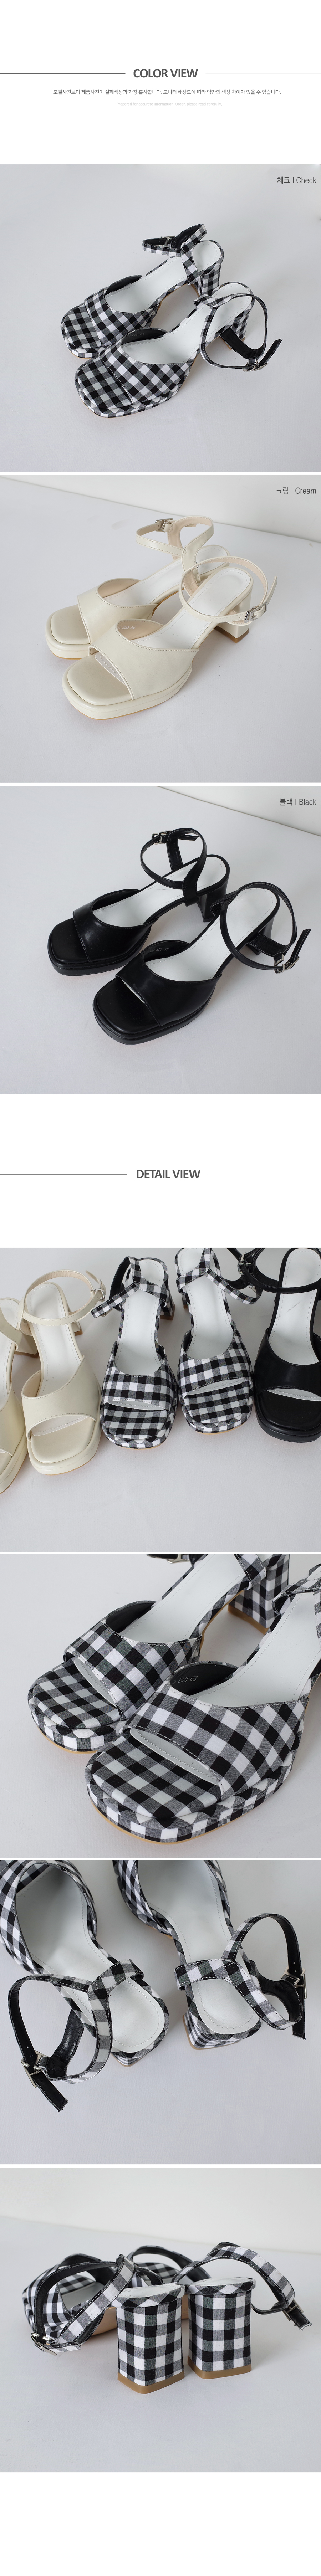 The sandals you keep looking for